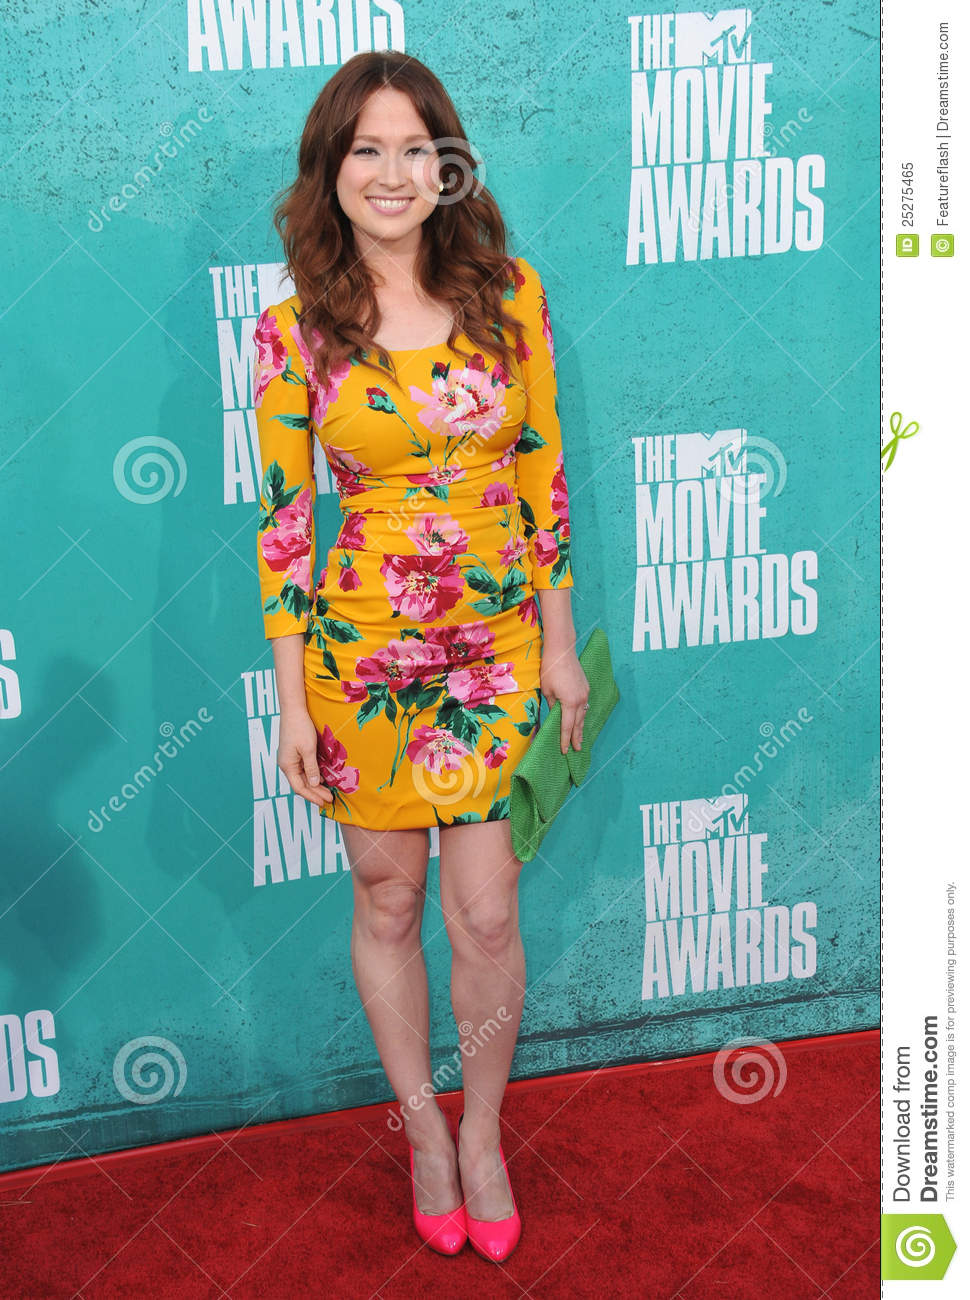 ellie kemper twitterellie kemper office, ellie kemper fan, ellie kemper net worth, ellie kemper fansite, ellie kemper teeth, ellie kemper reddit, ellie kemper website, ellie kemper running, ellie kemper hq, ellie kemper stand up, ellie kemper ellen, ellie kemper instagram, ellie kemper interview, ellie kemper husband, ellie kemper twitter, ellie kemper married, ellie kemper wikipedia